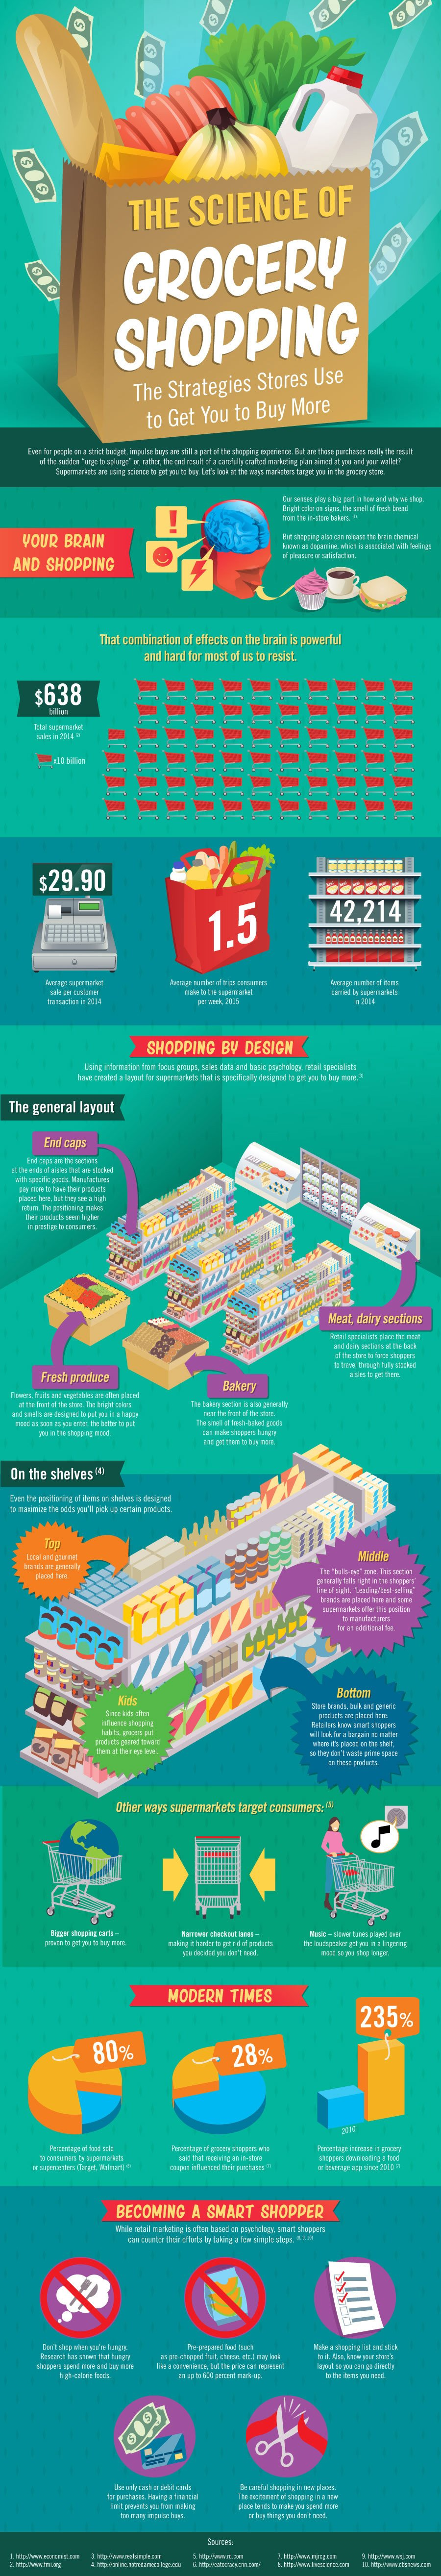 56. The Science of Grocery Shopping